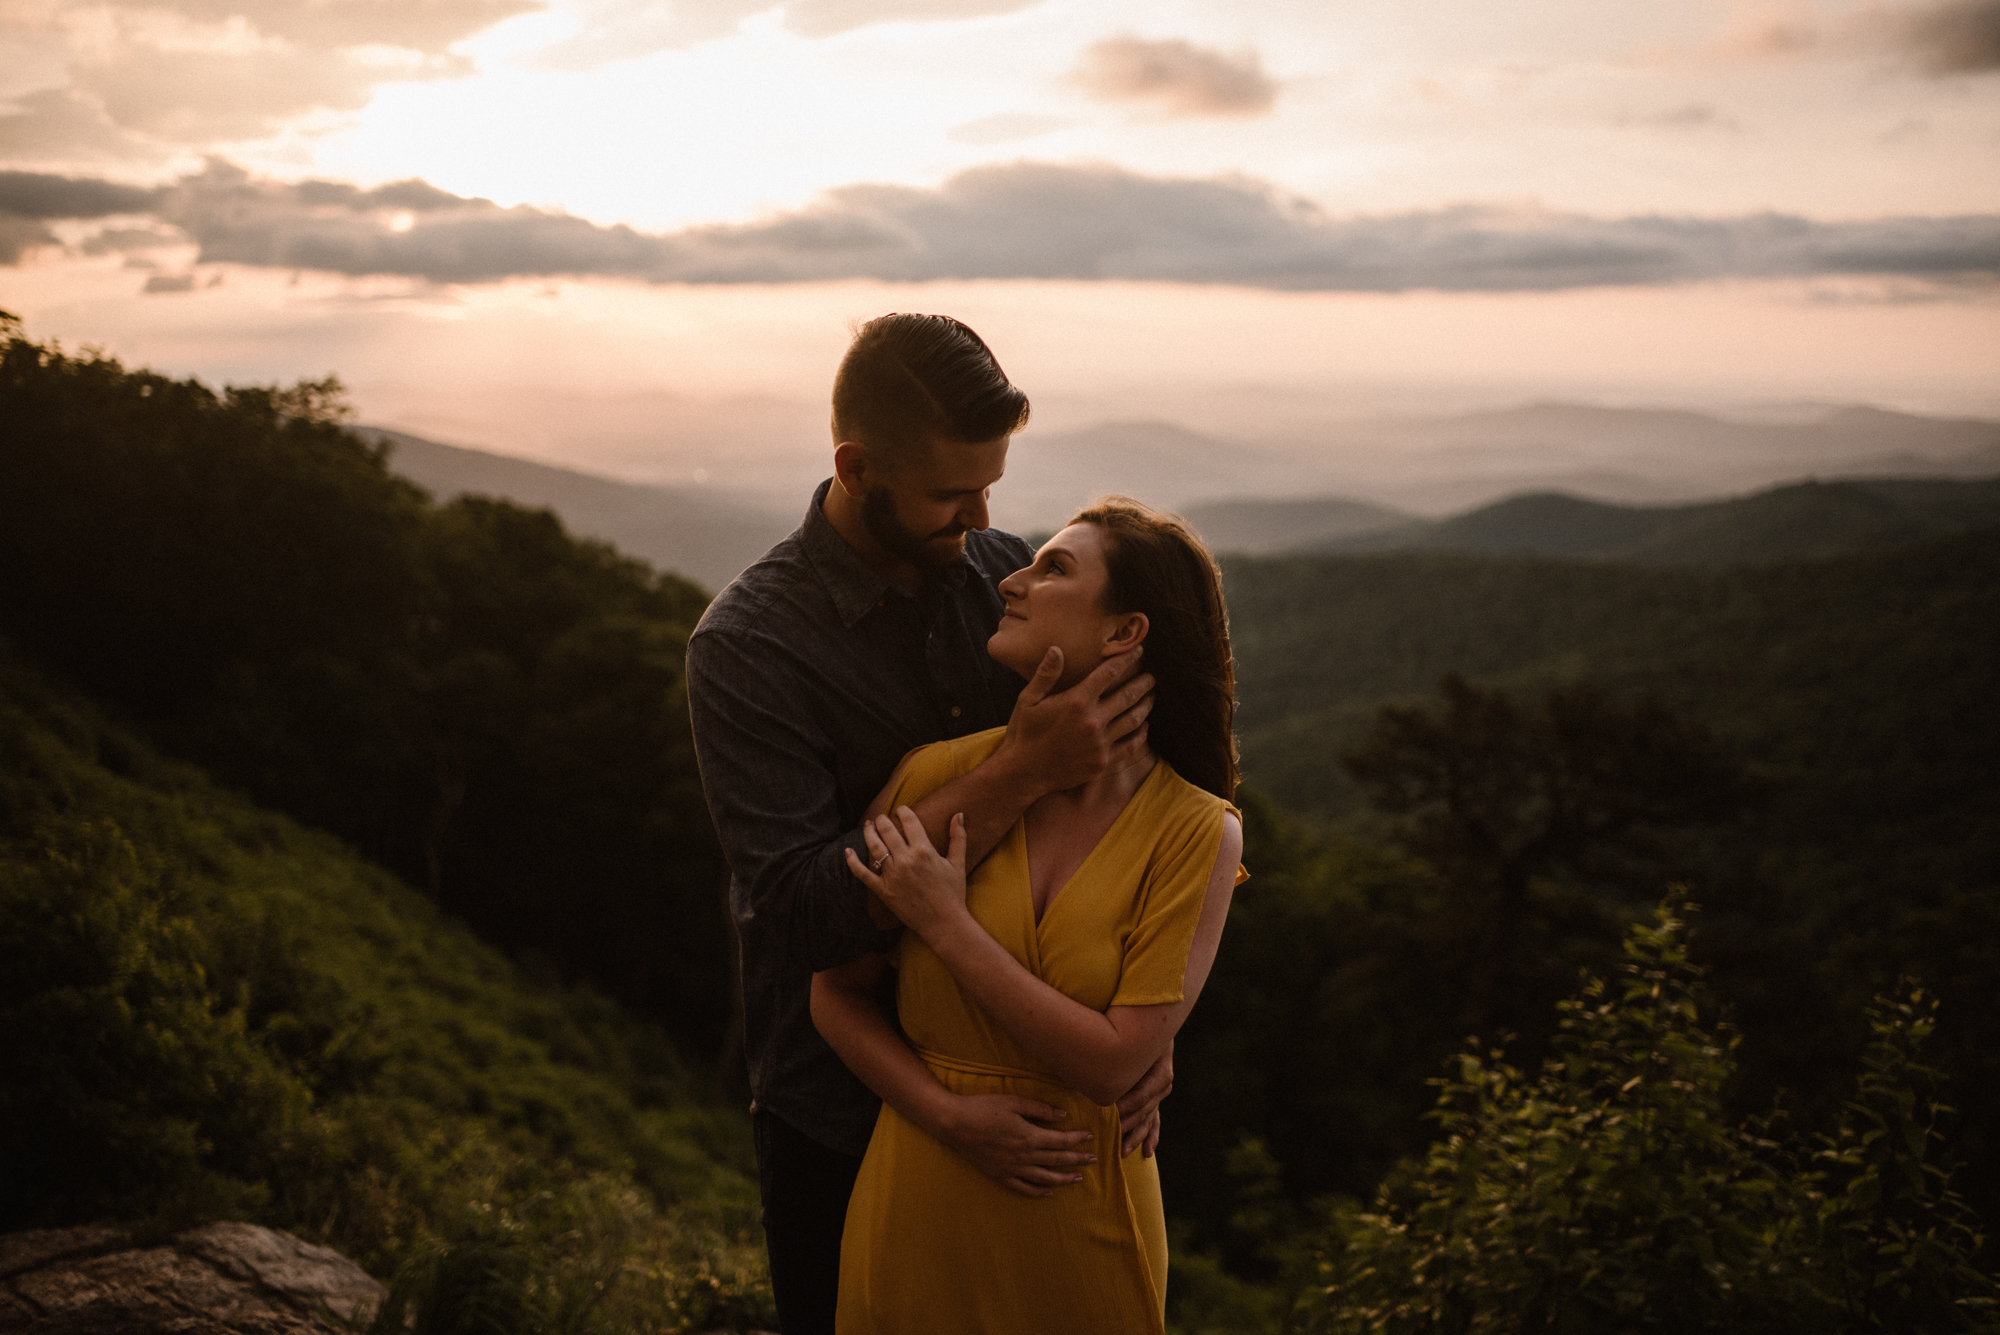 Camryn and Larry Sunrise Engagement Session in Shenandoah National Park - Things to Do in Luray Virginia - Adventurous Couple Photo Shoot White Sails Creative_9.jpg